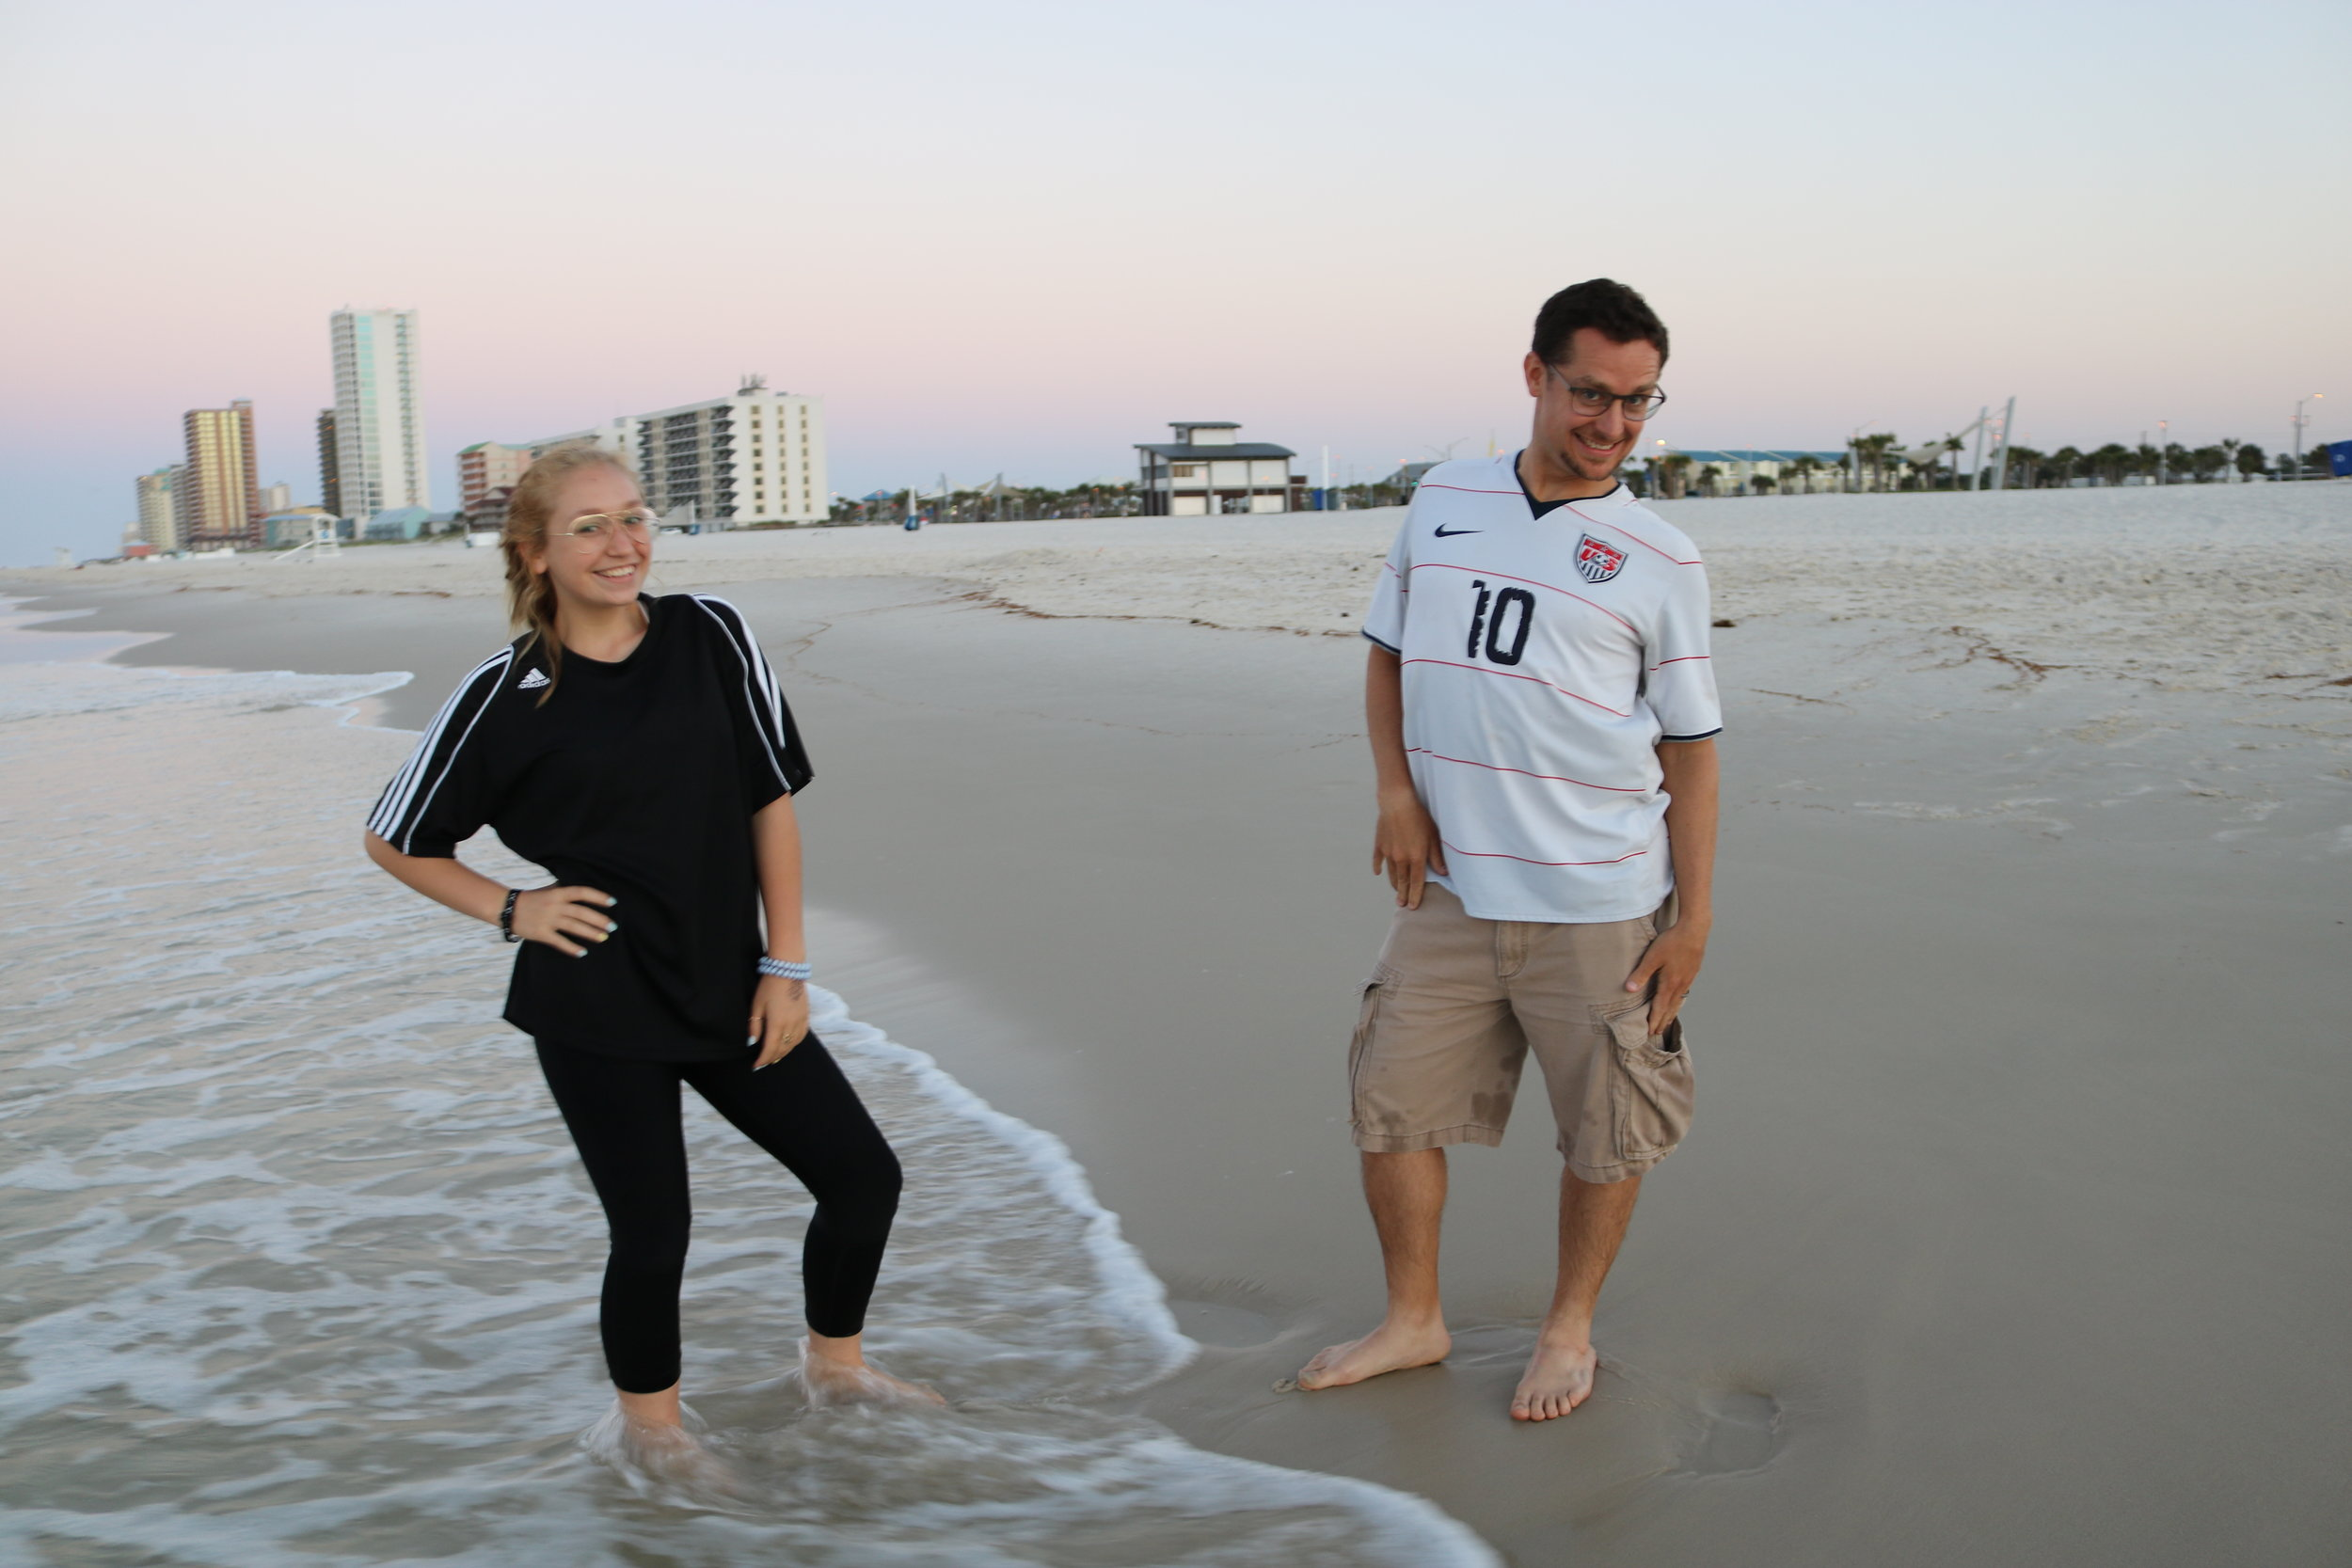 On our recent beach trip, I tried to mimic my daughter's pose. I failed.